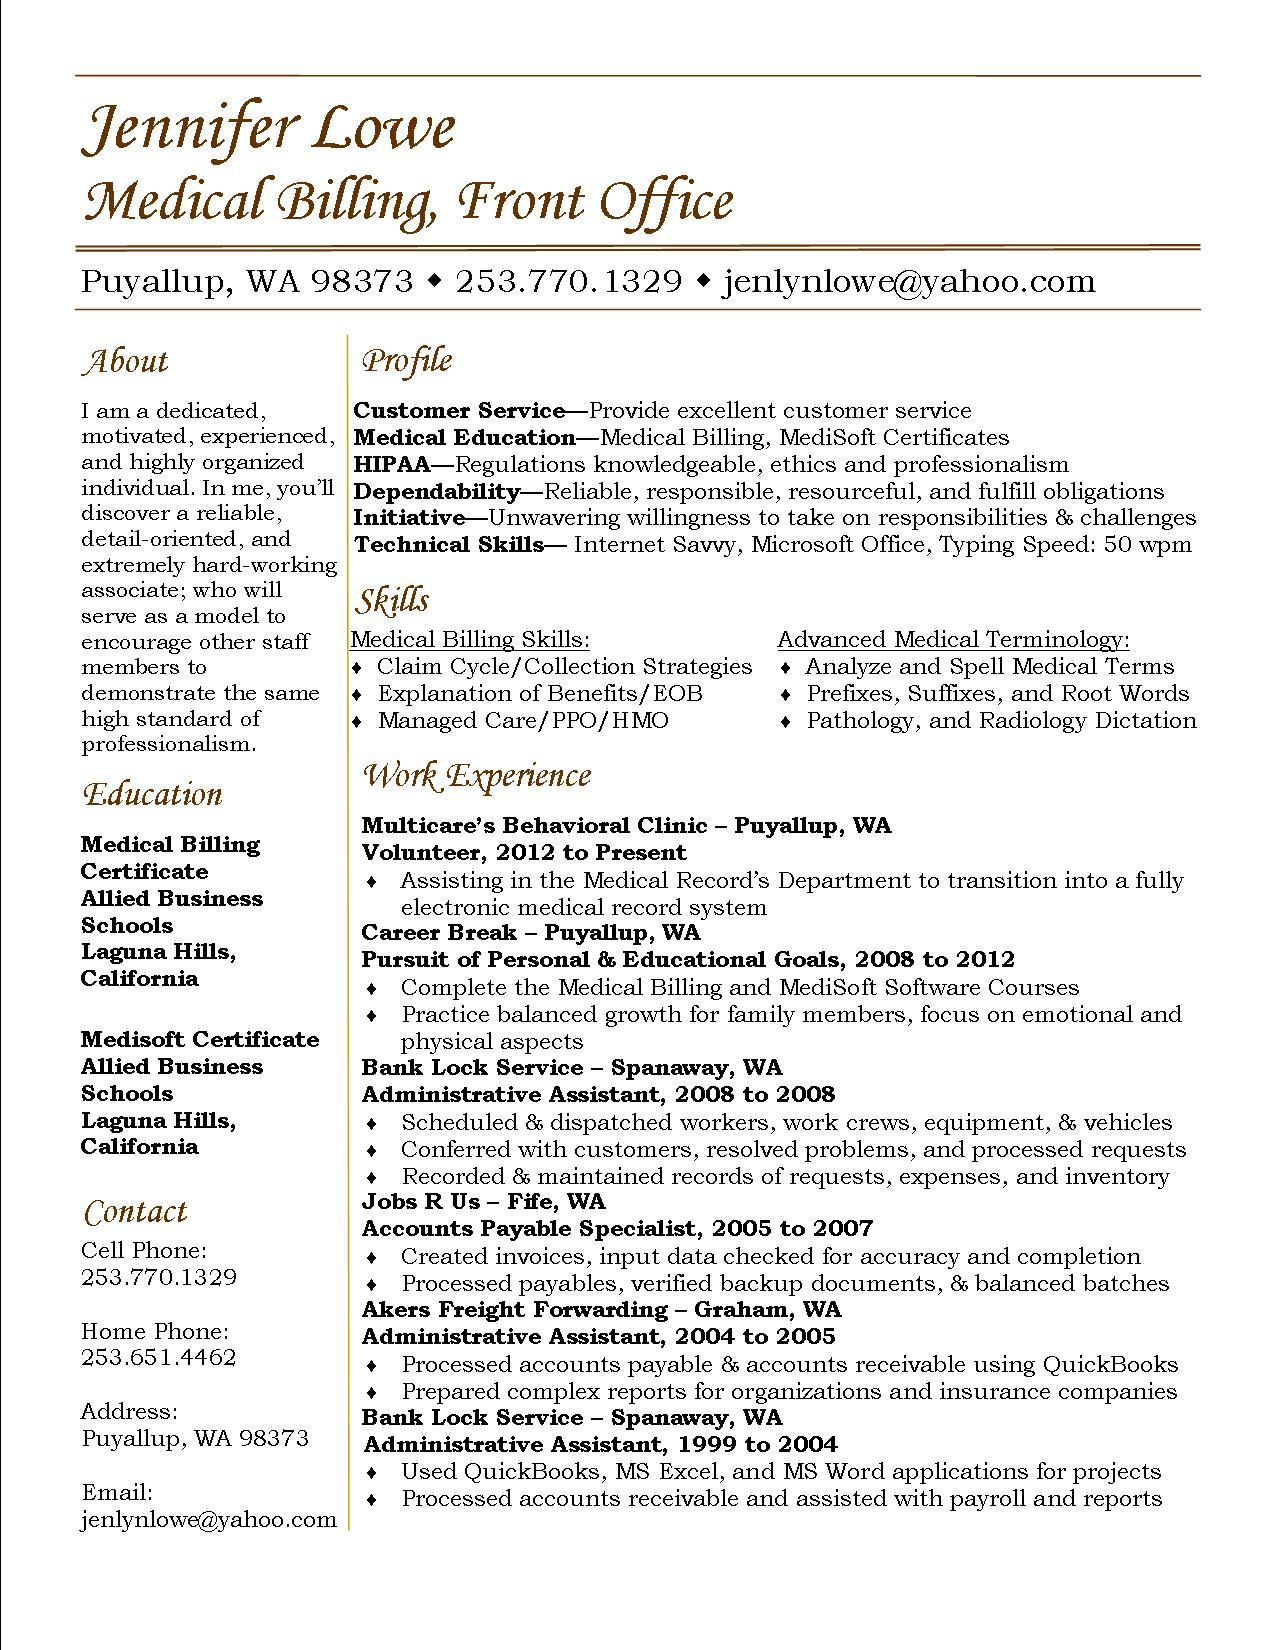 Amazing Resume Examples Jennifer Lowe Resume  Medical Billing #resume #career  Medical